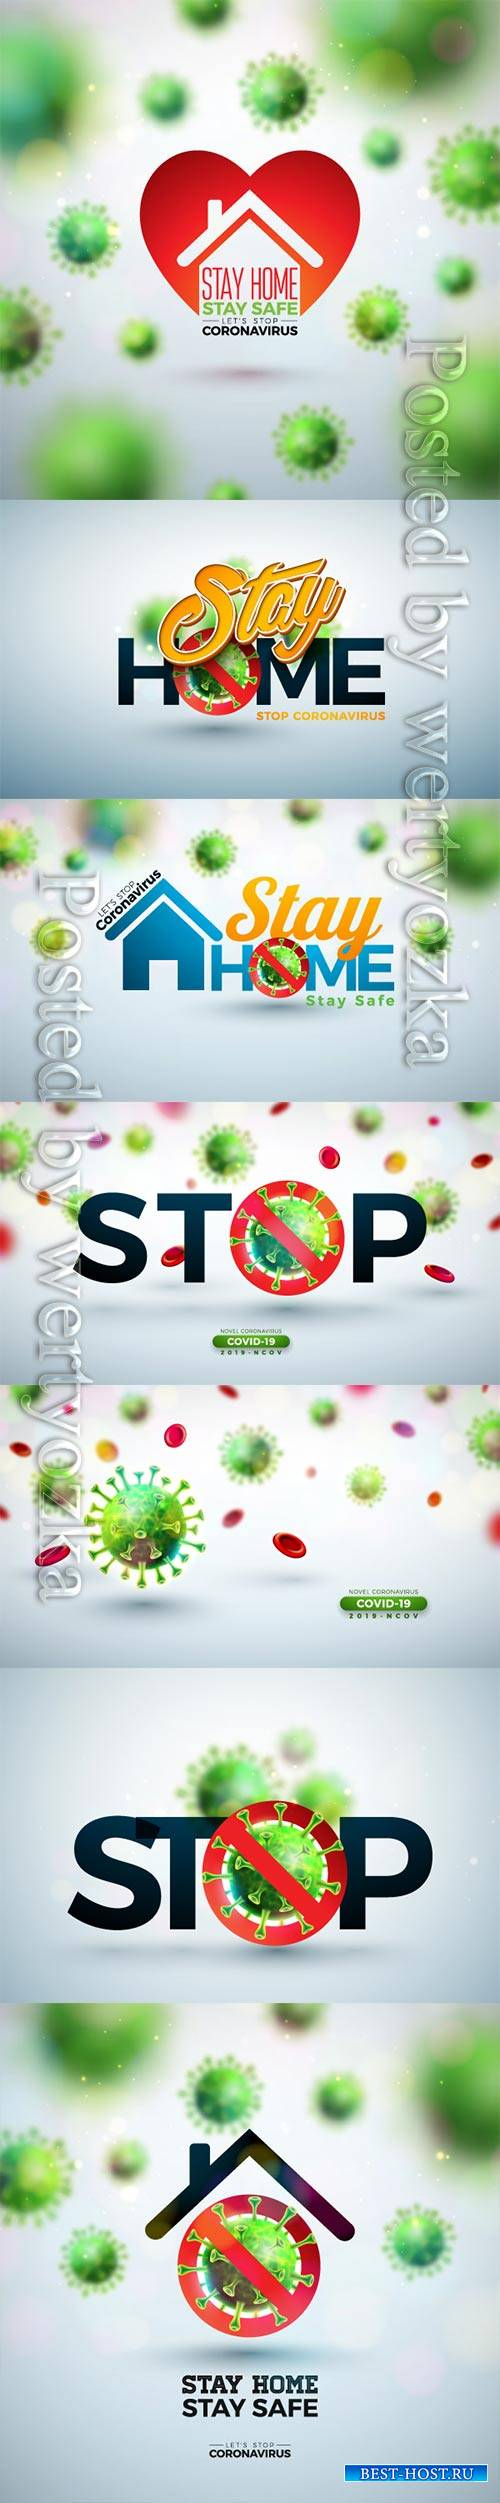 COVID 19, Coranavirus vector illustration sets # 4